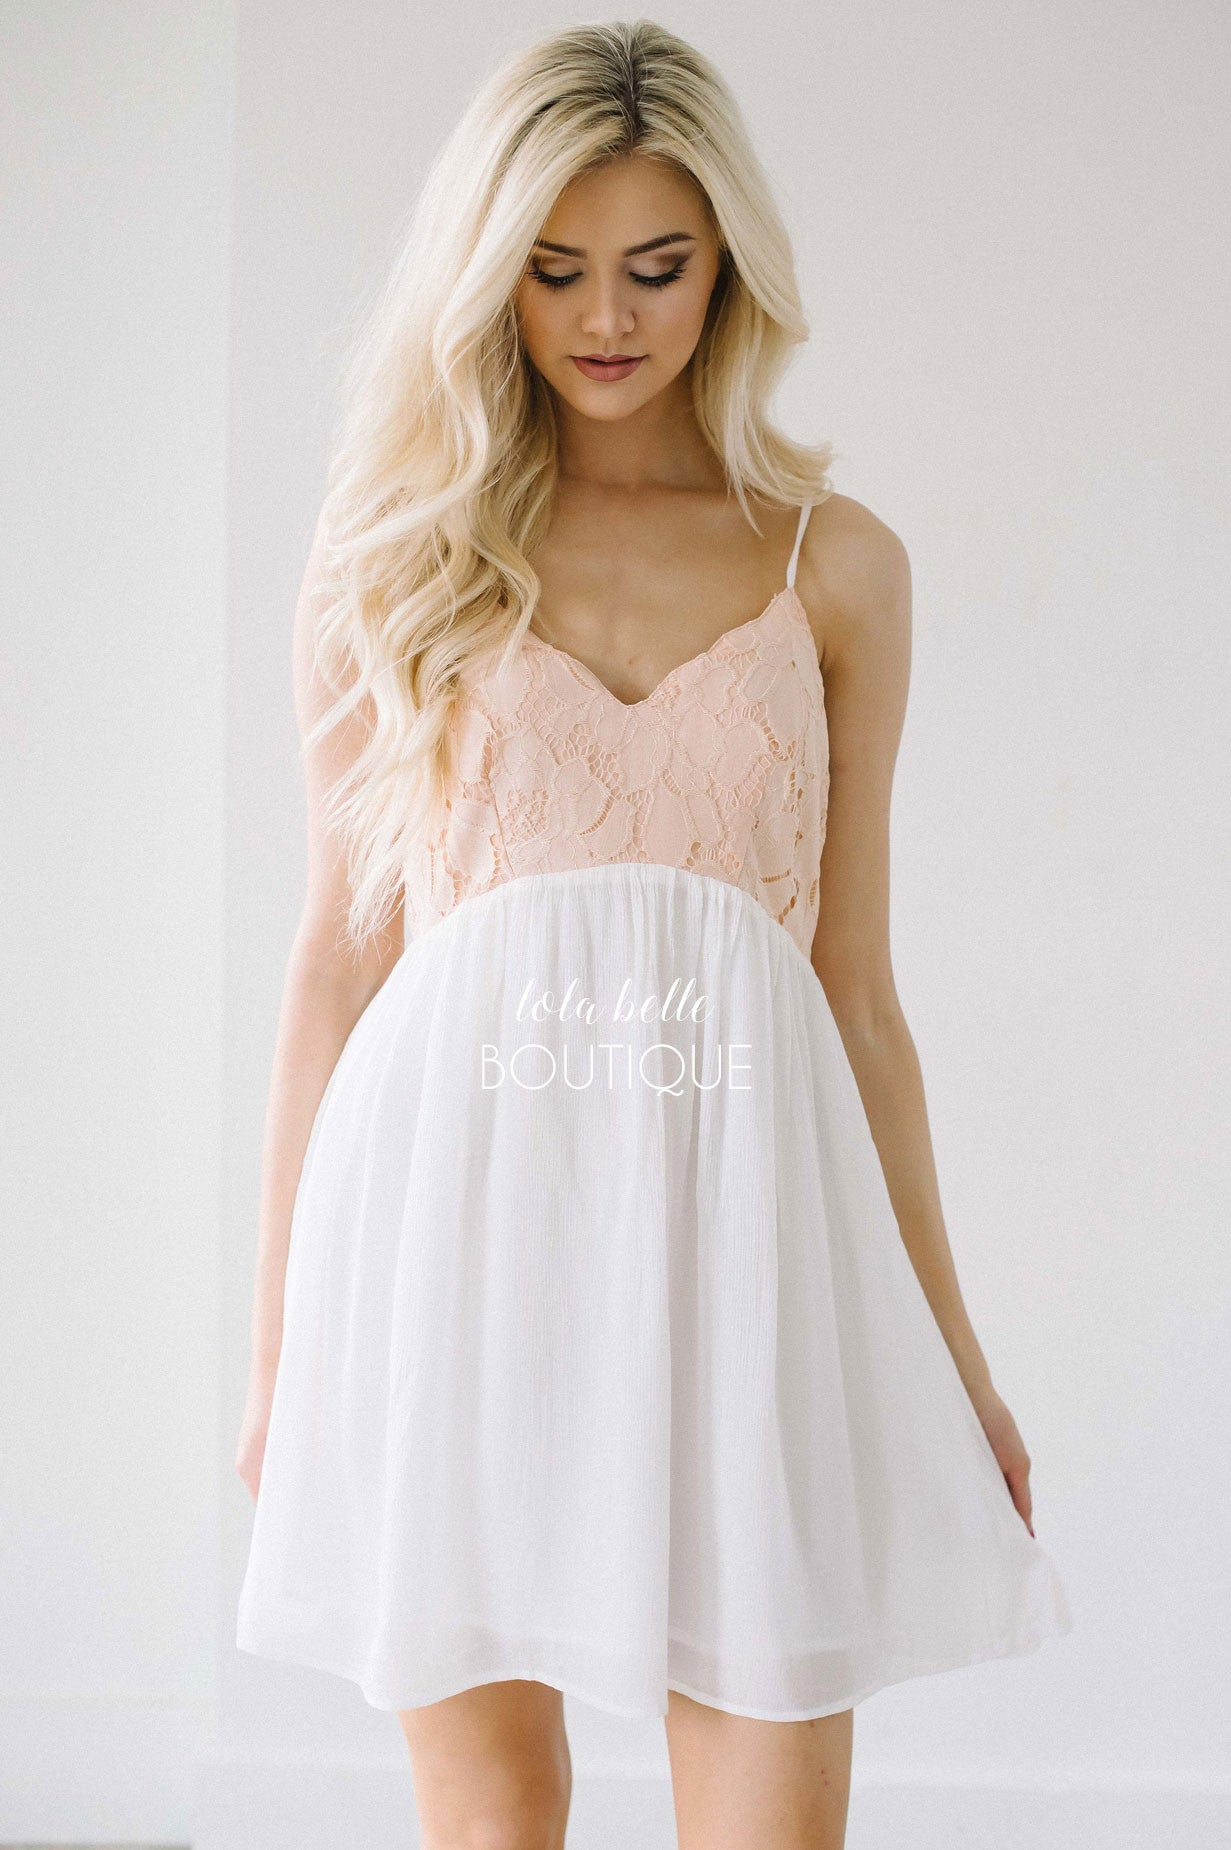 Dainty White & Peach Lace Dress